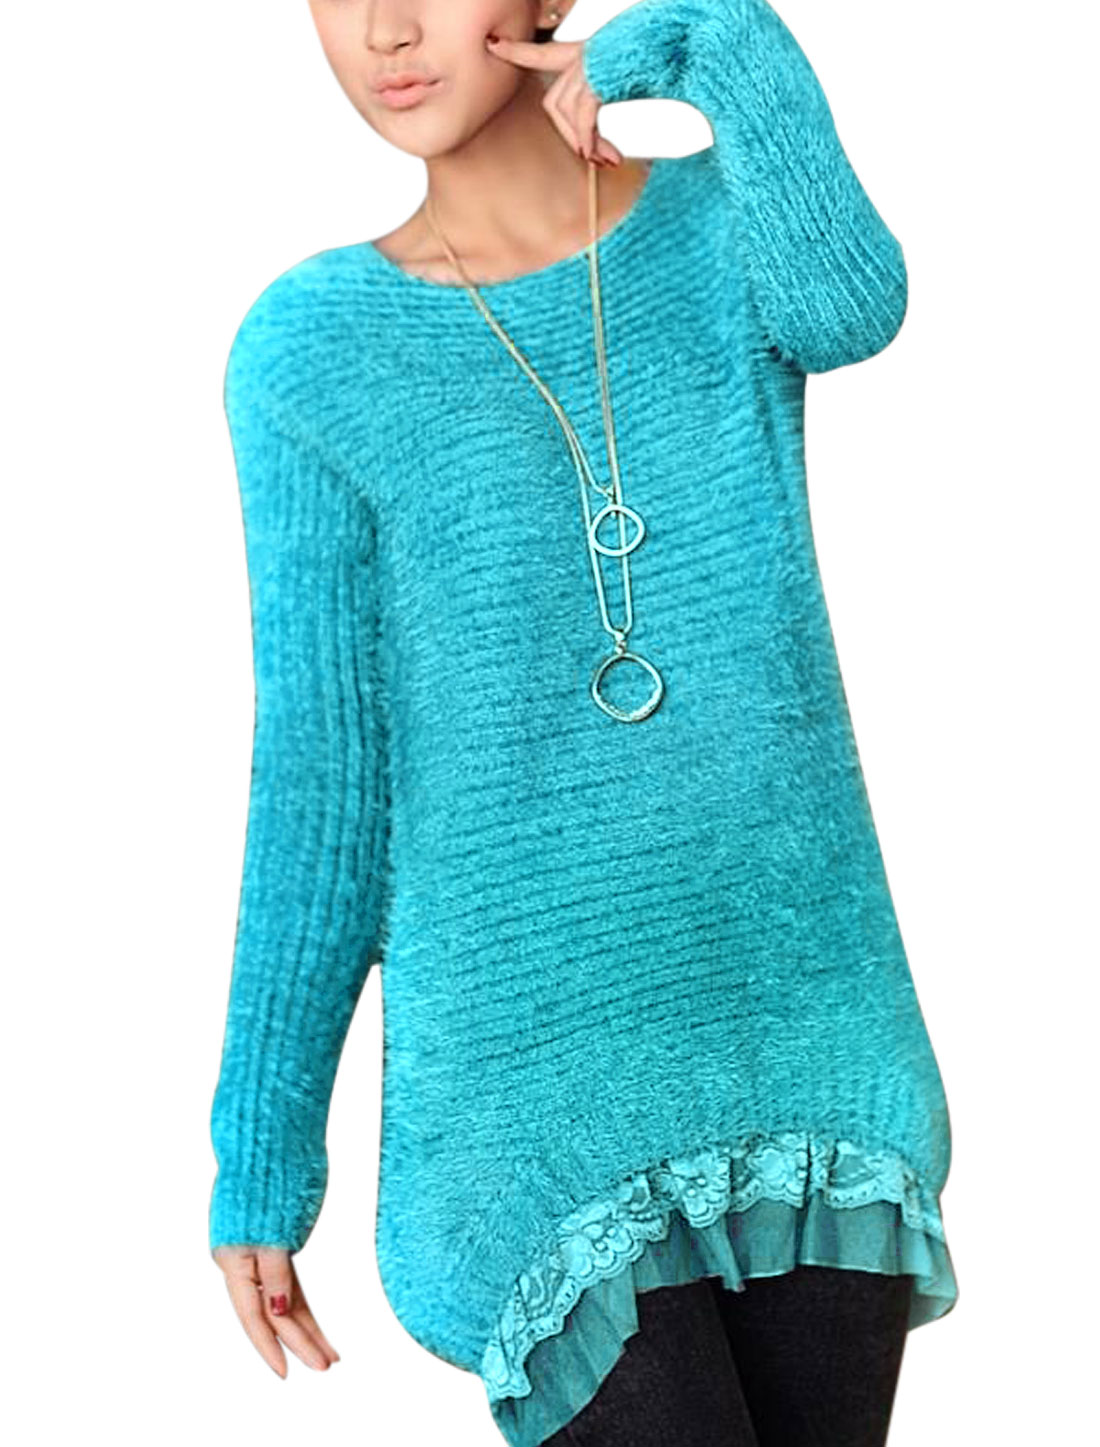 Women New Style Pullover Lace Panel Hem Tunic Sweater Sky Blue XS